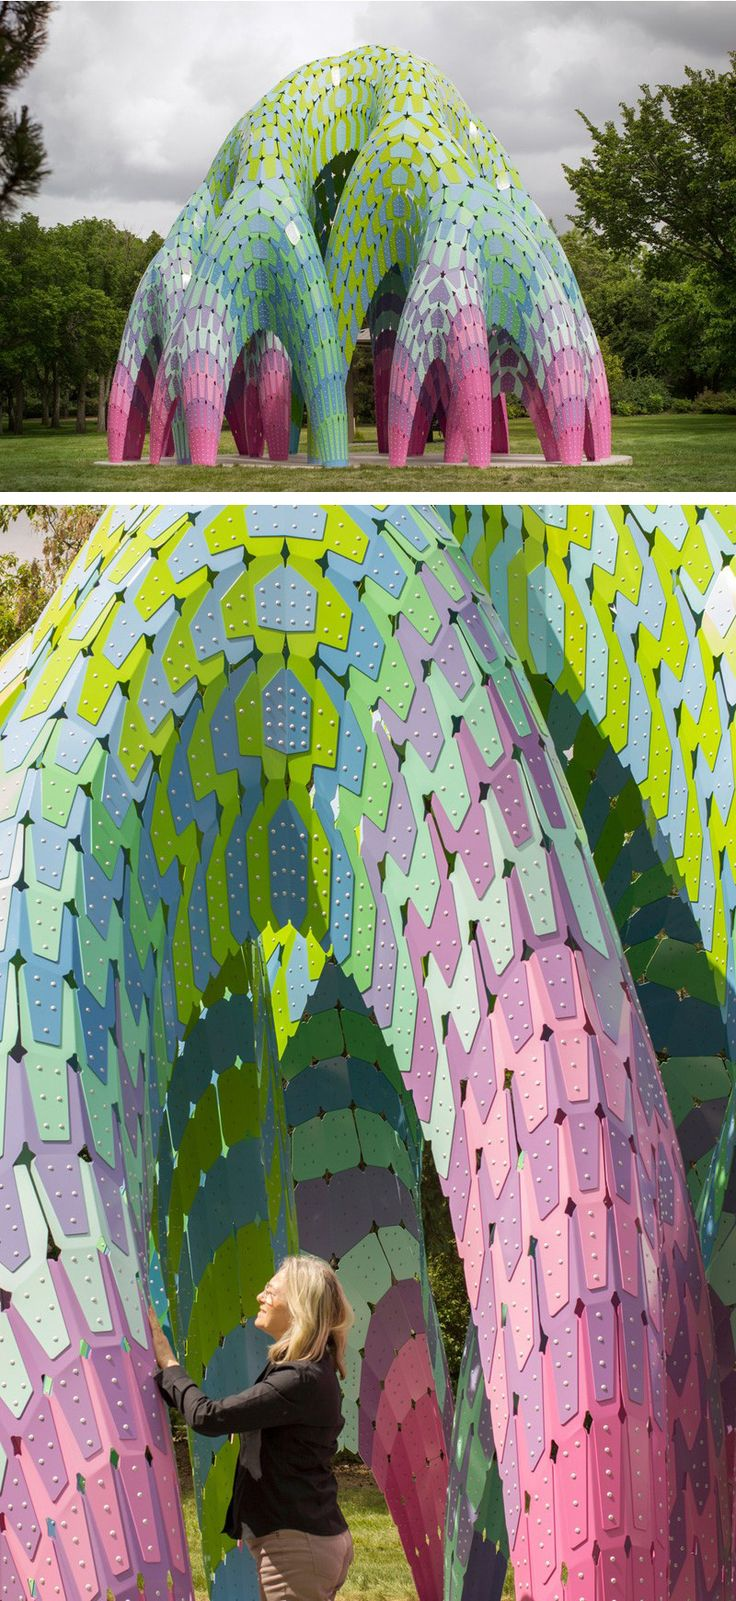 Commissioned by The Edmonton Arts Council to design a permanent sculpture in Borden Park in Edmonton, Canada, MARC FORNES / THEVERYMANY has created Vaulted Willow, a colorful digitally fabricated public art installation made up of over 721 aluminum pieces.